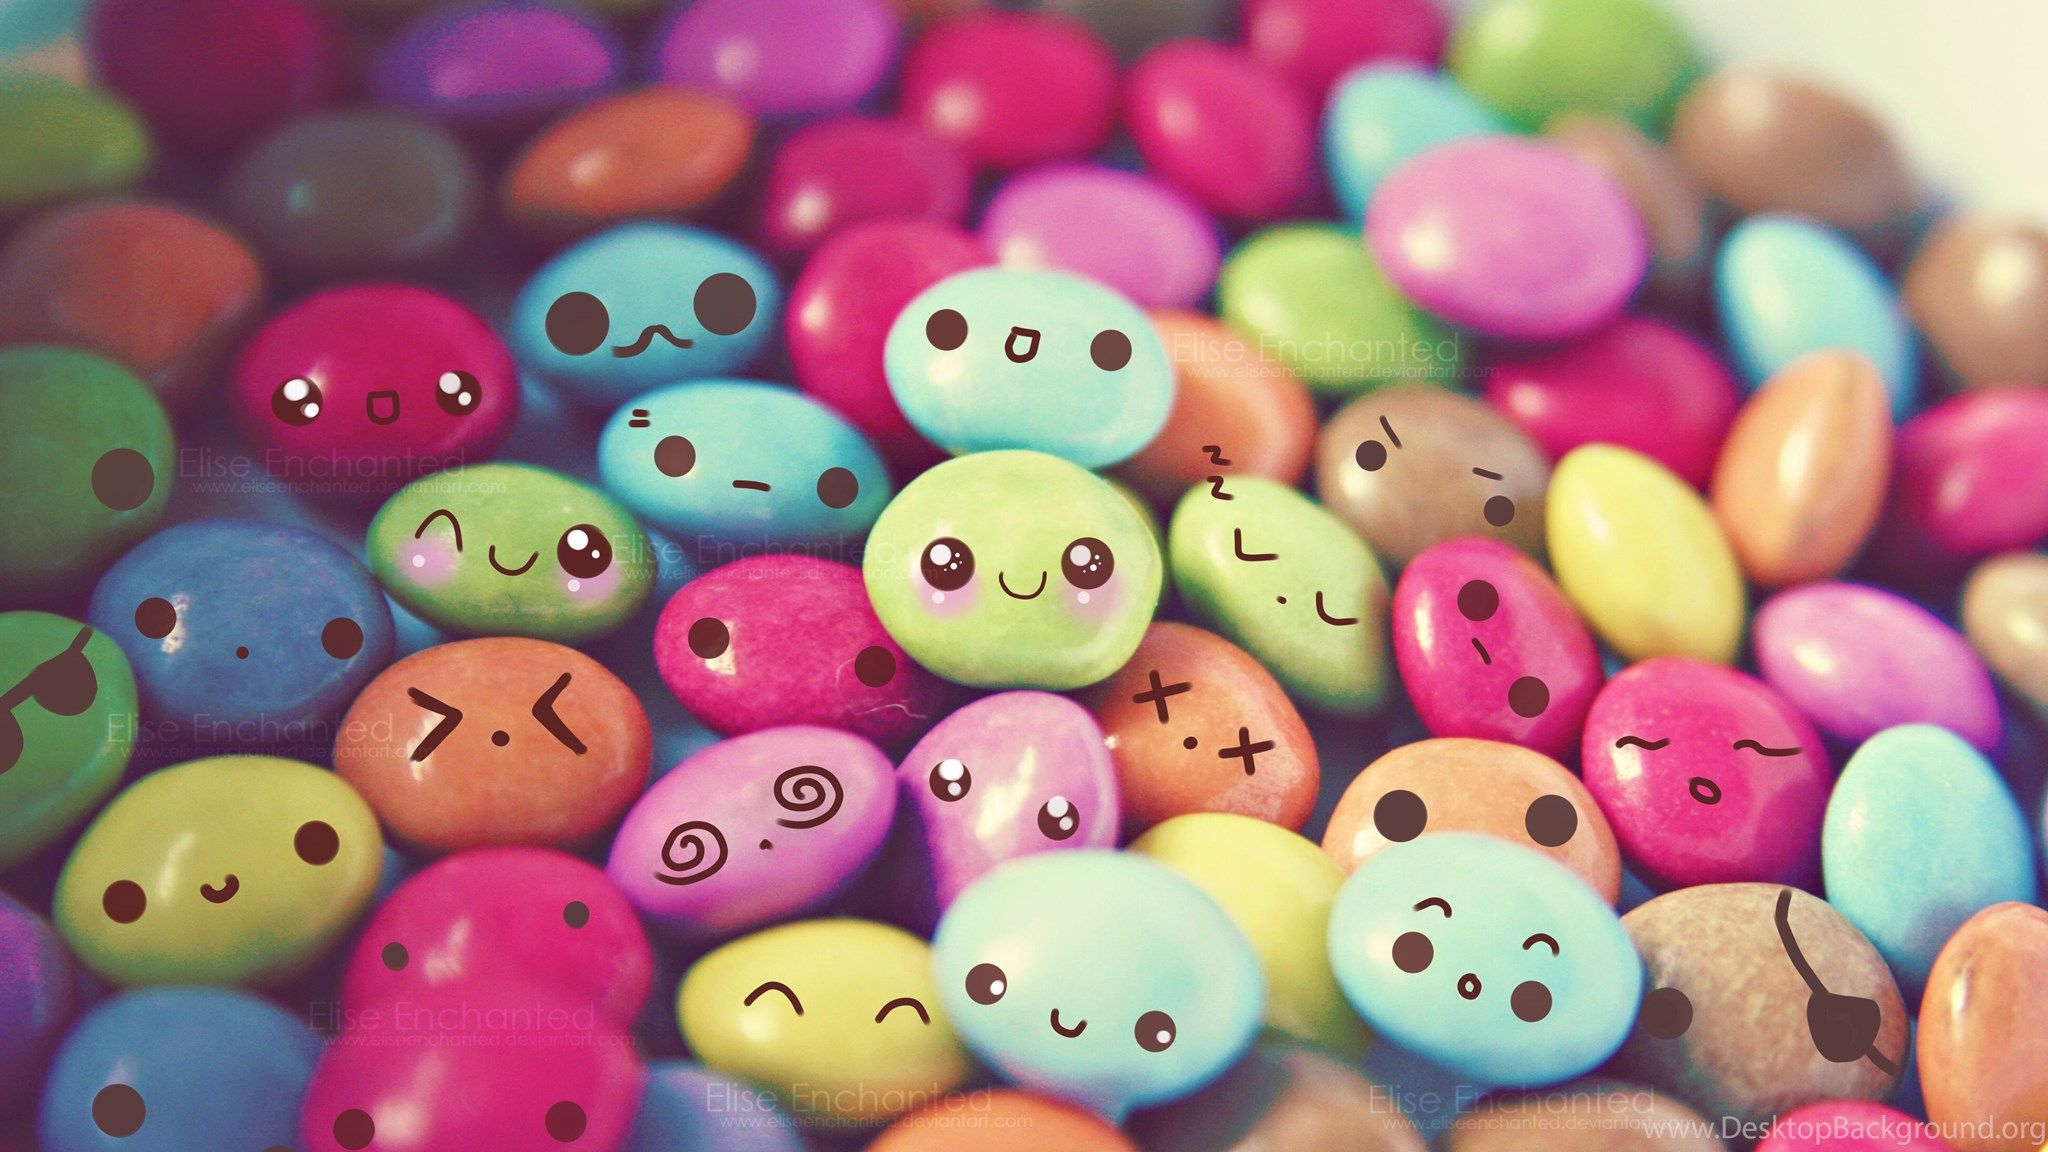 2048x1152 Cute Wallpapers Top Free 2048x1152 Cute Backgrounds